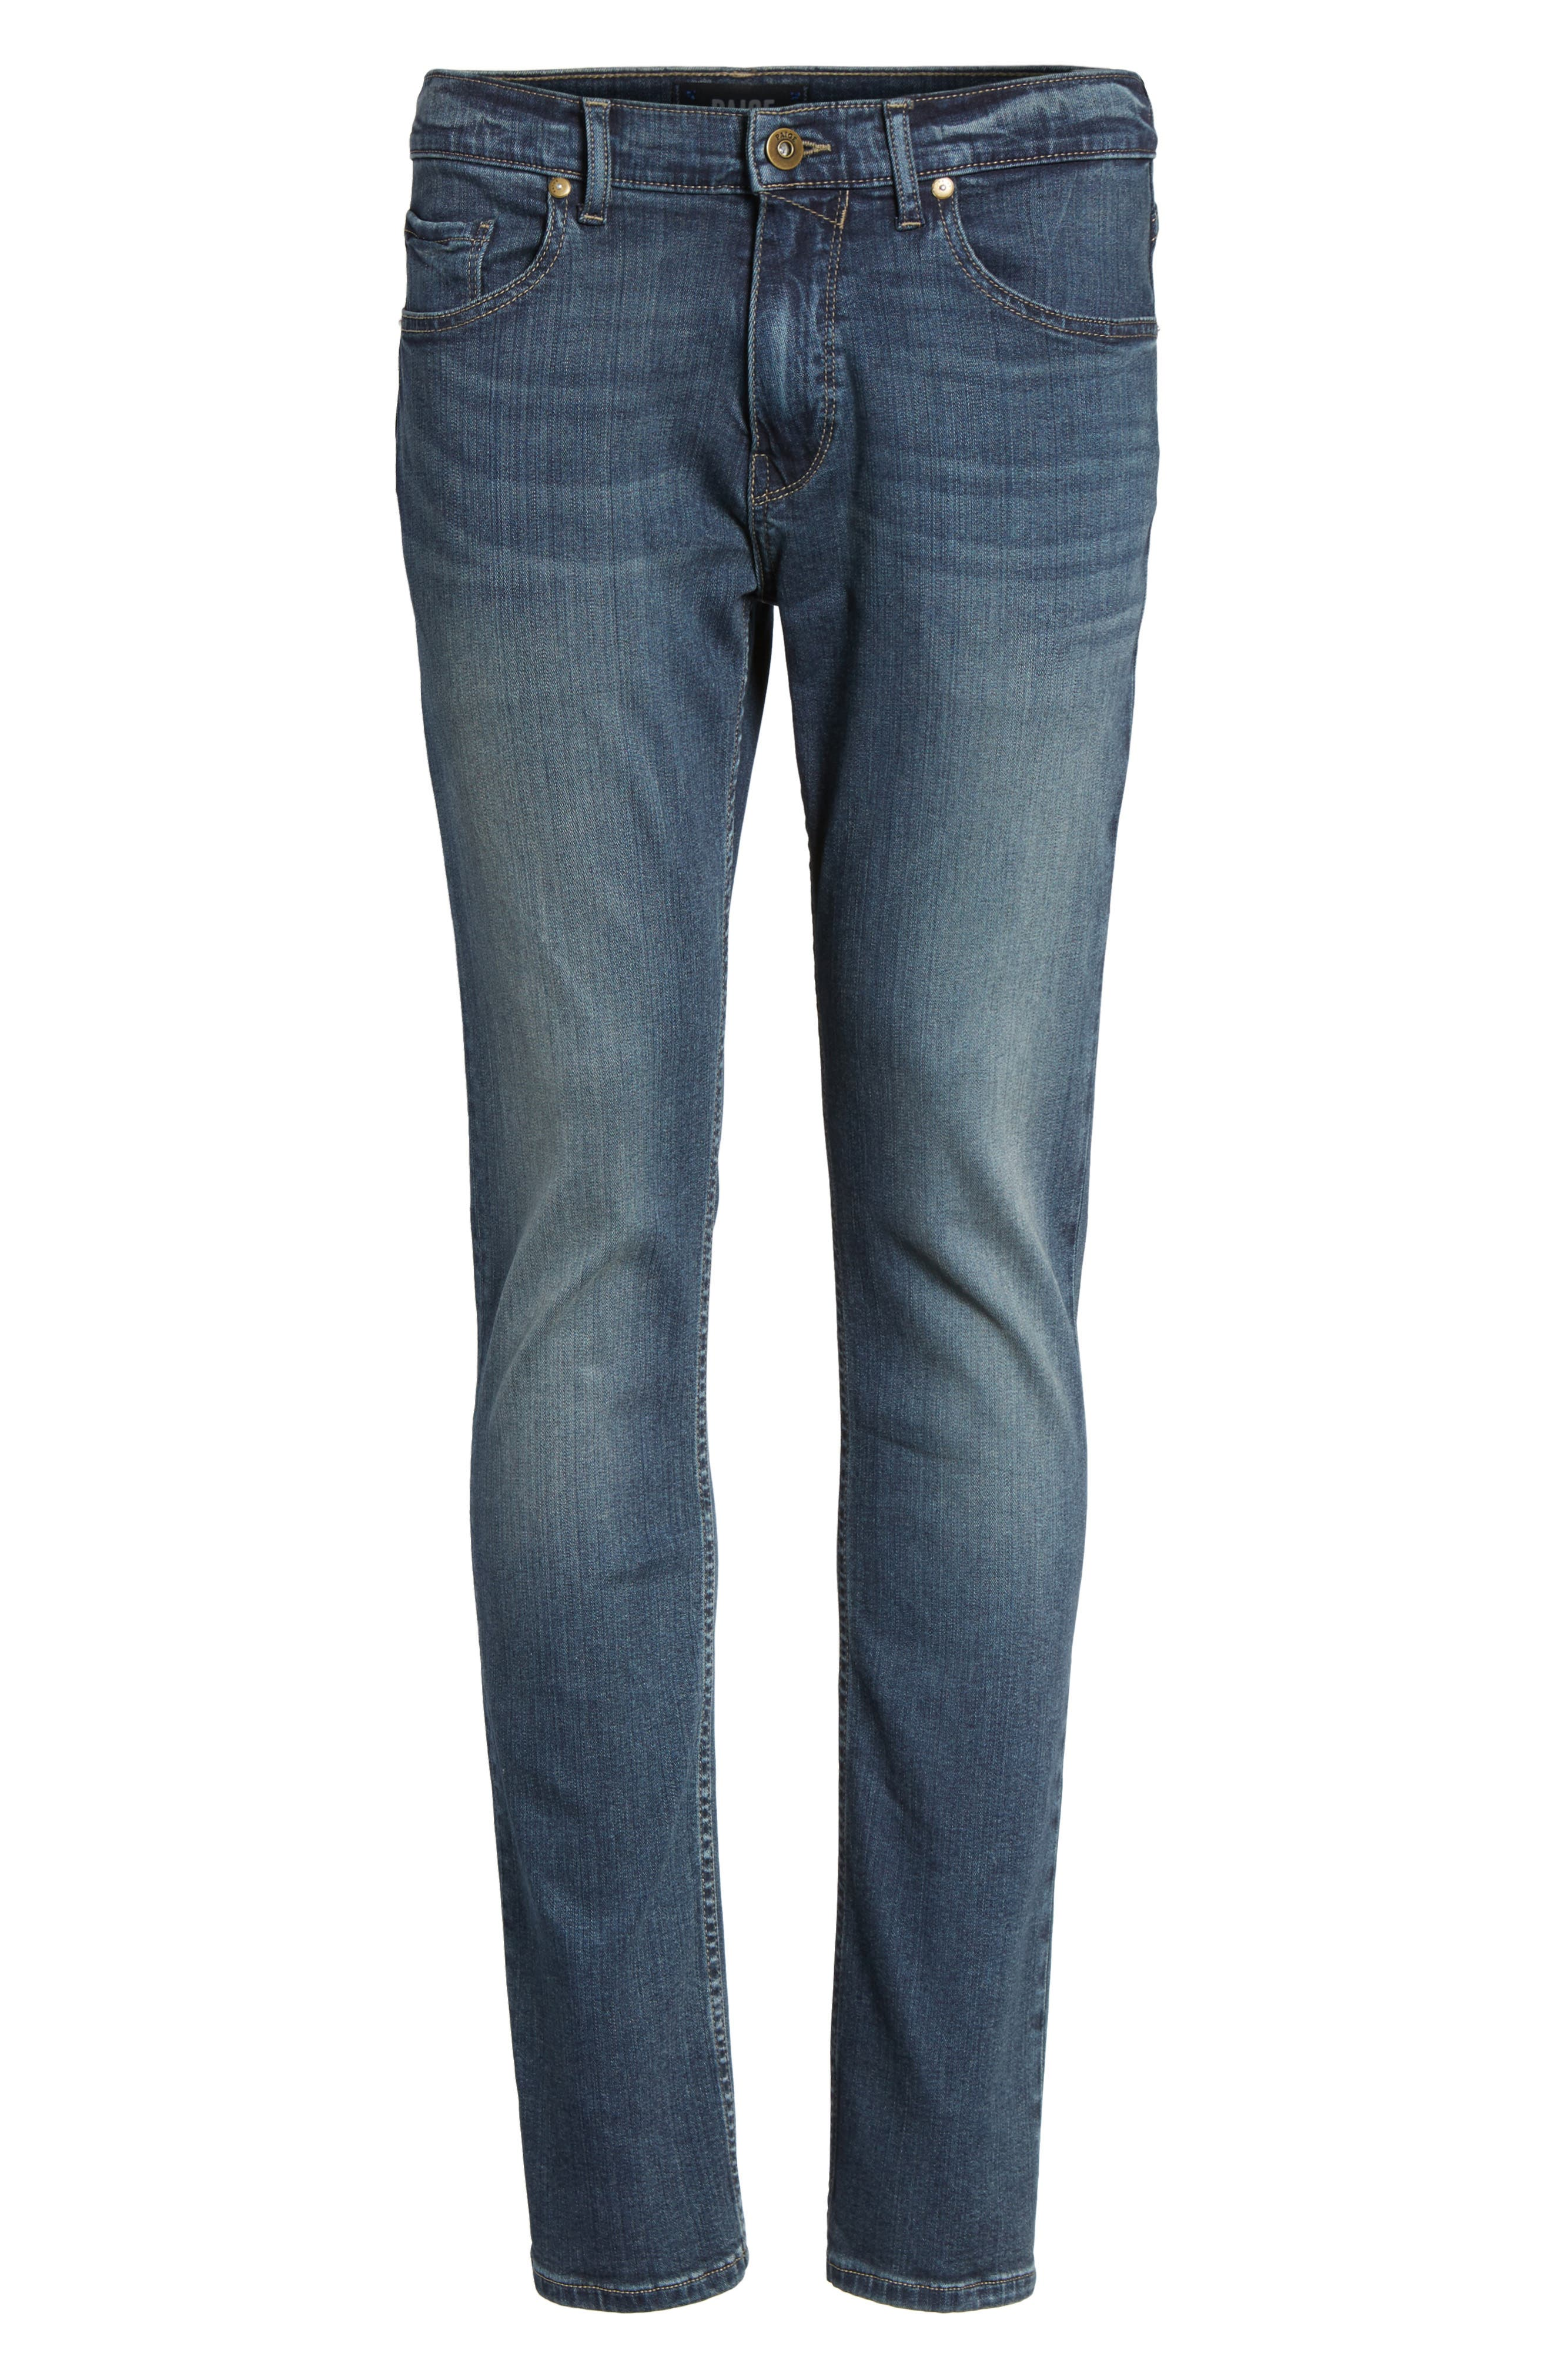 Transcend - Federal Slim Straight Leg Jeans,                             Alternate thumbnail 6, color,                             400